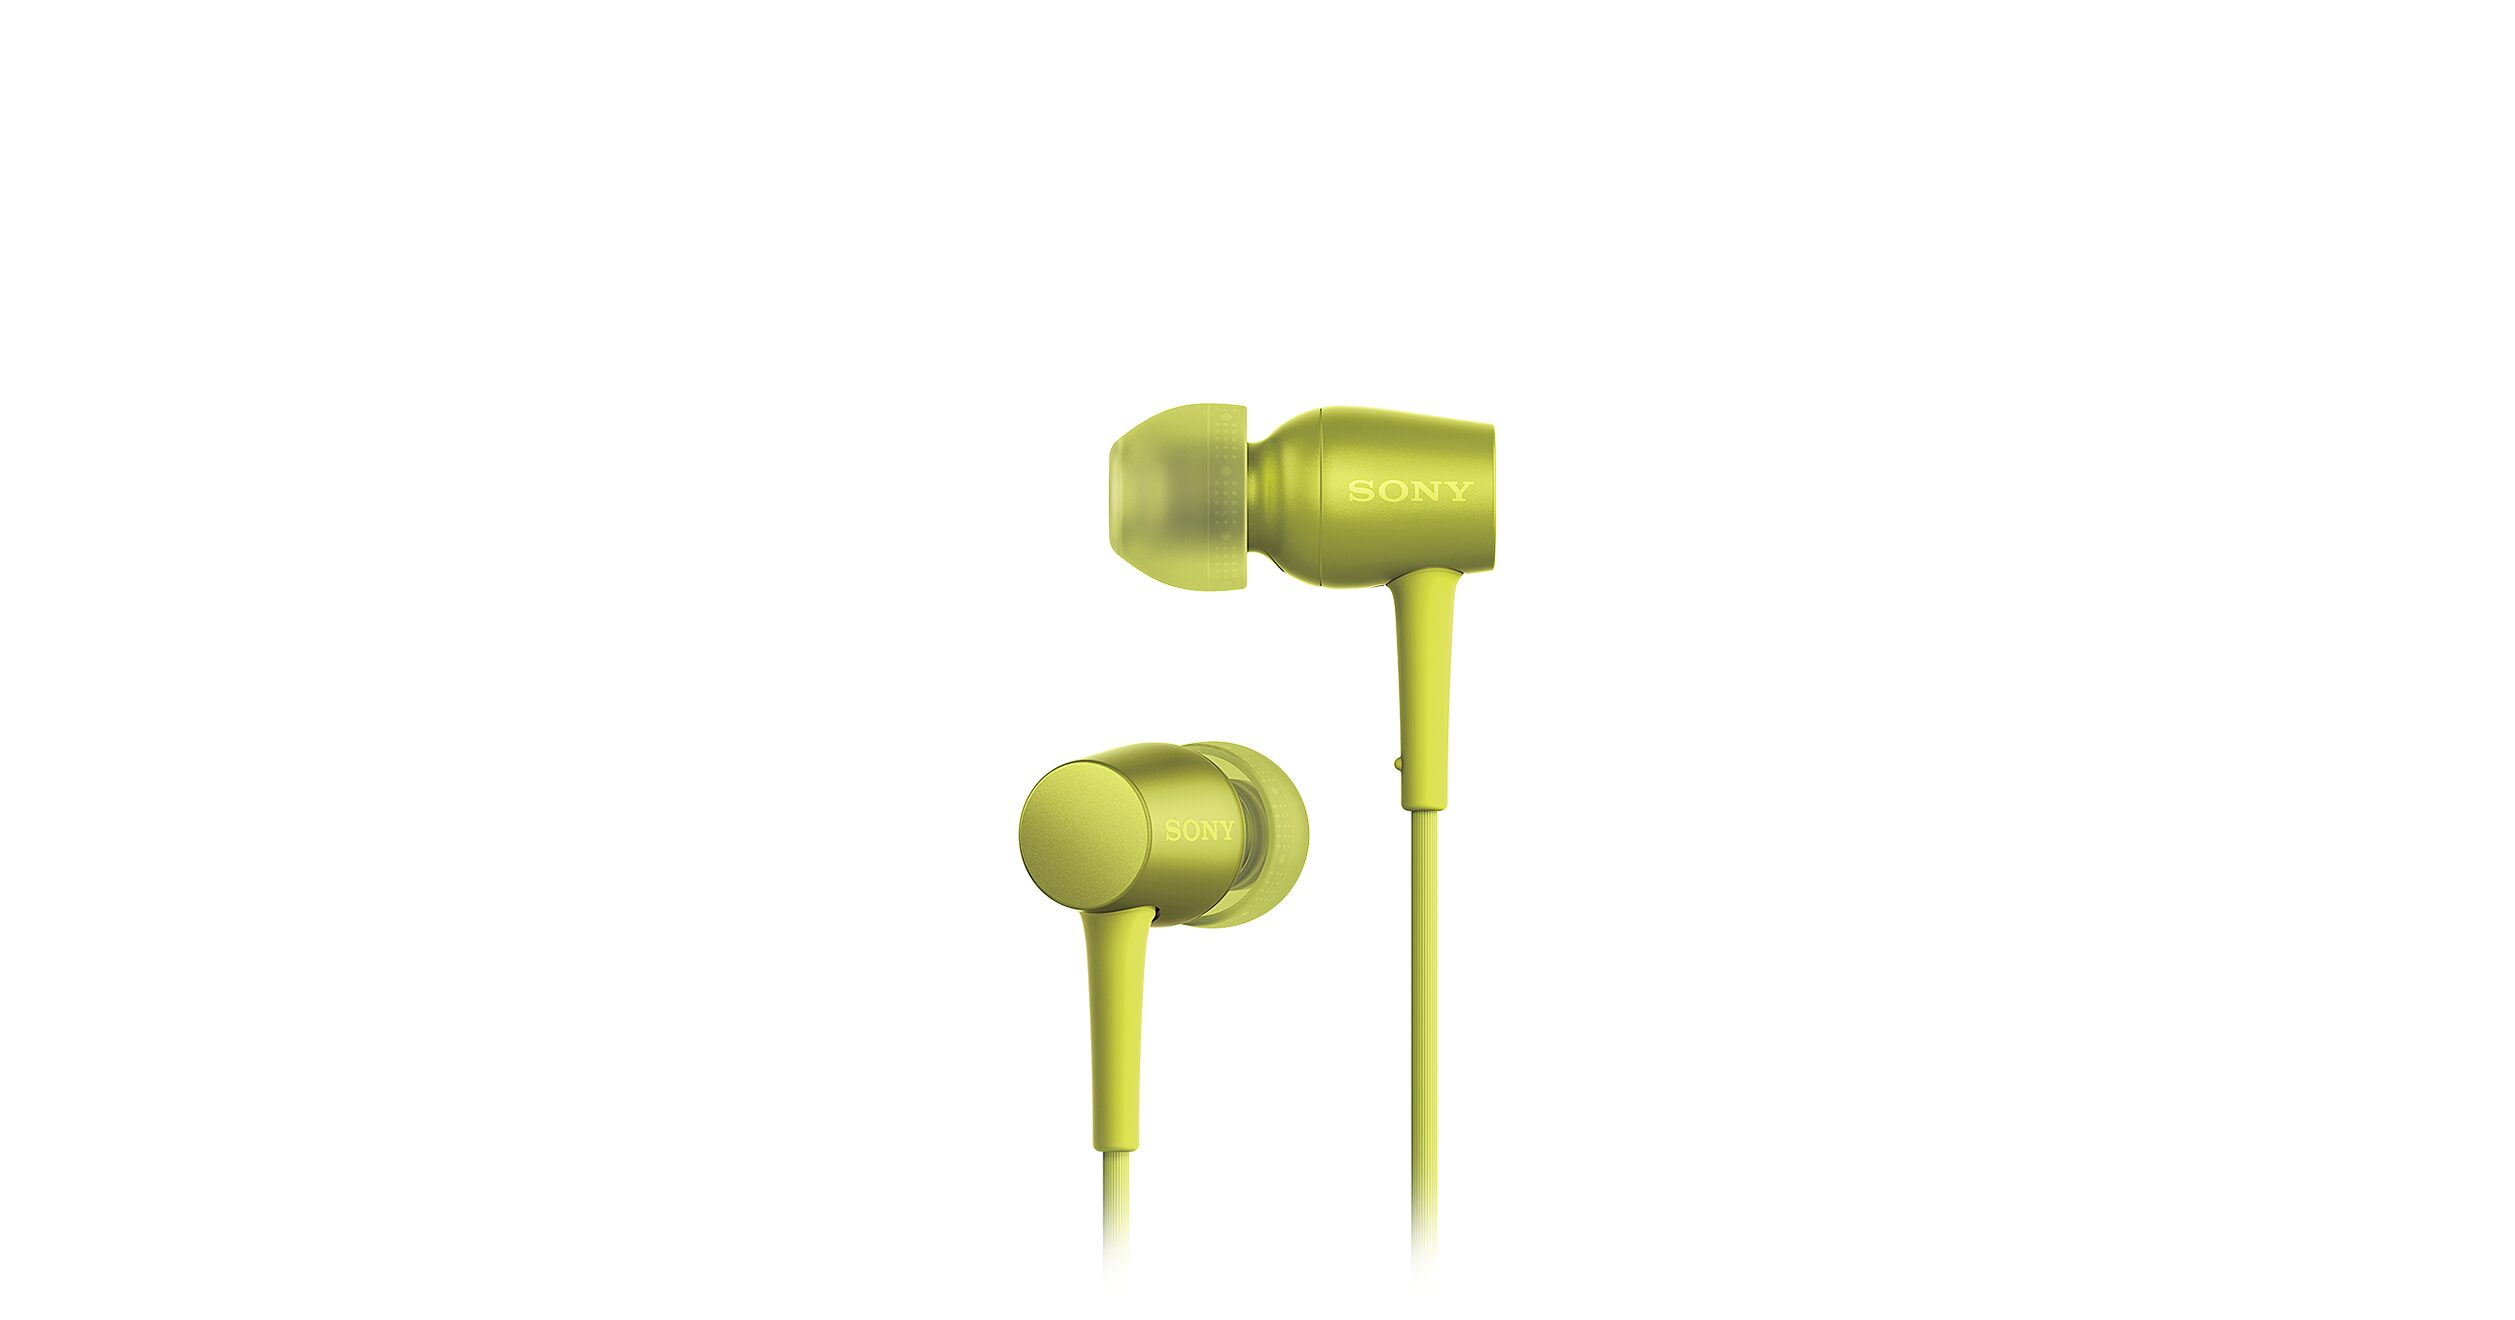 In Ear Mobile Phone Headphones With Mic Mdr Ex750ap Sony Asia Hear On Wireless Noice Cancelling Headphone 100abn Blue Pacific